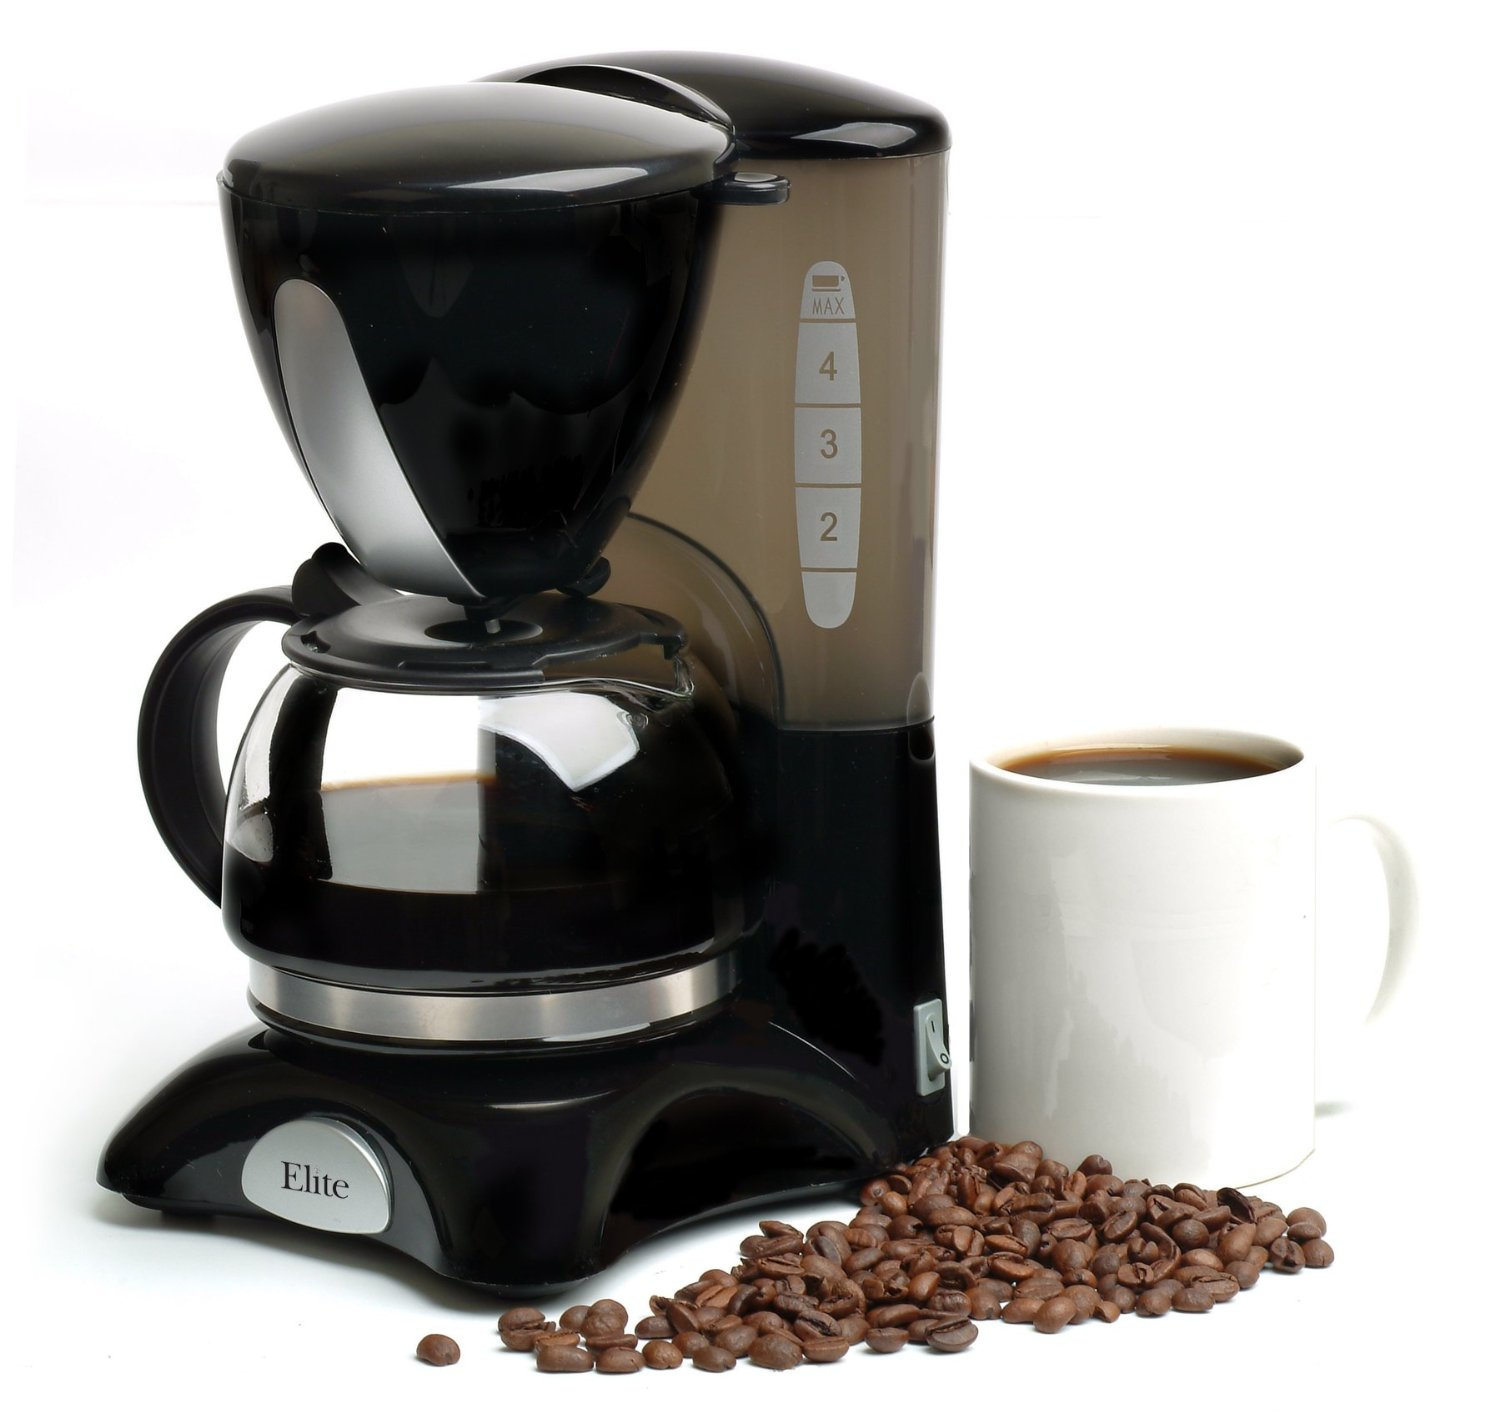 Top 10 Best Coffee Makers